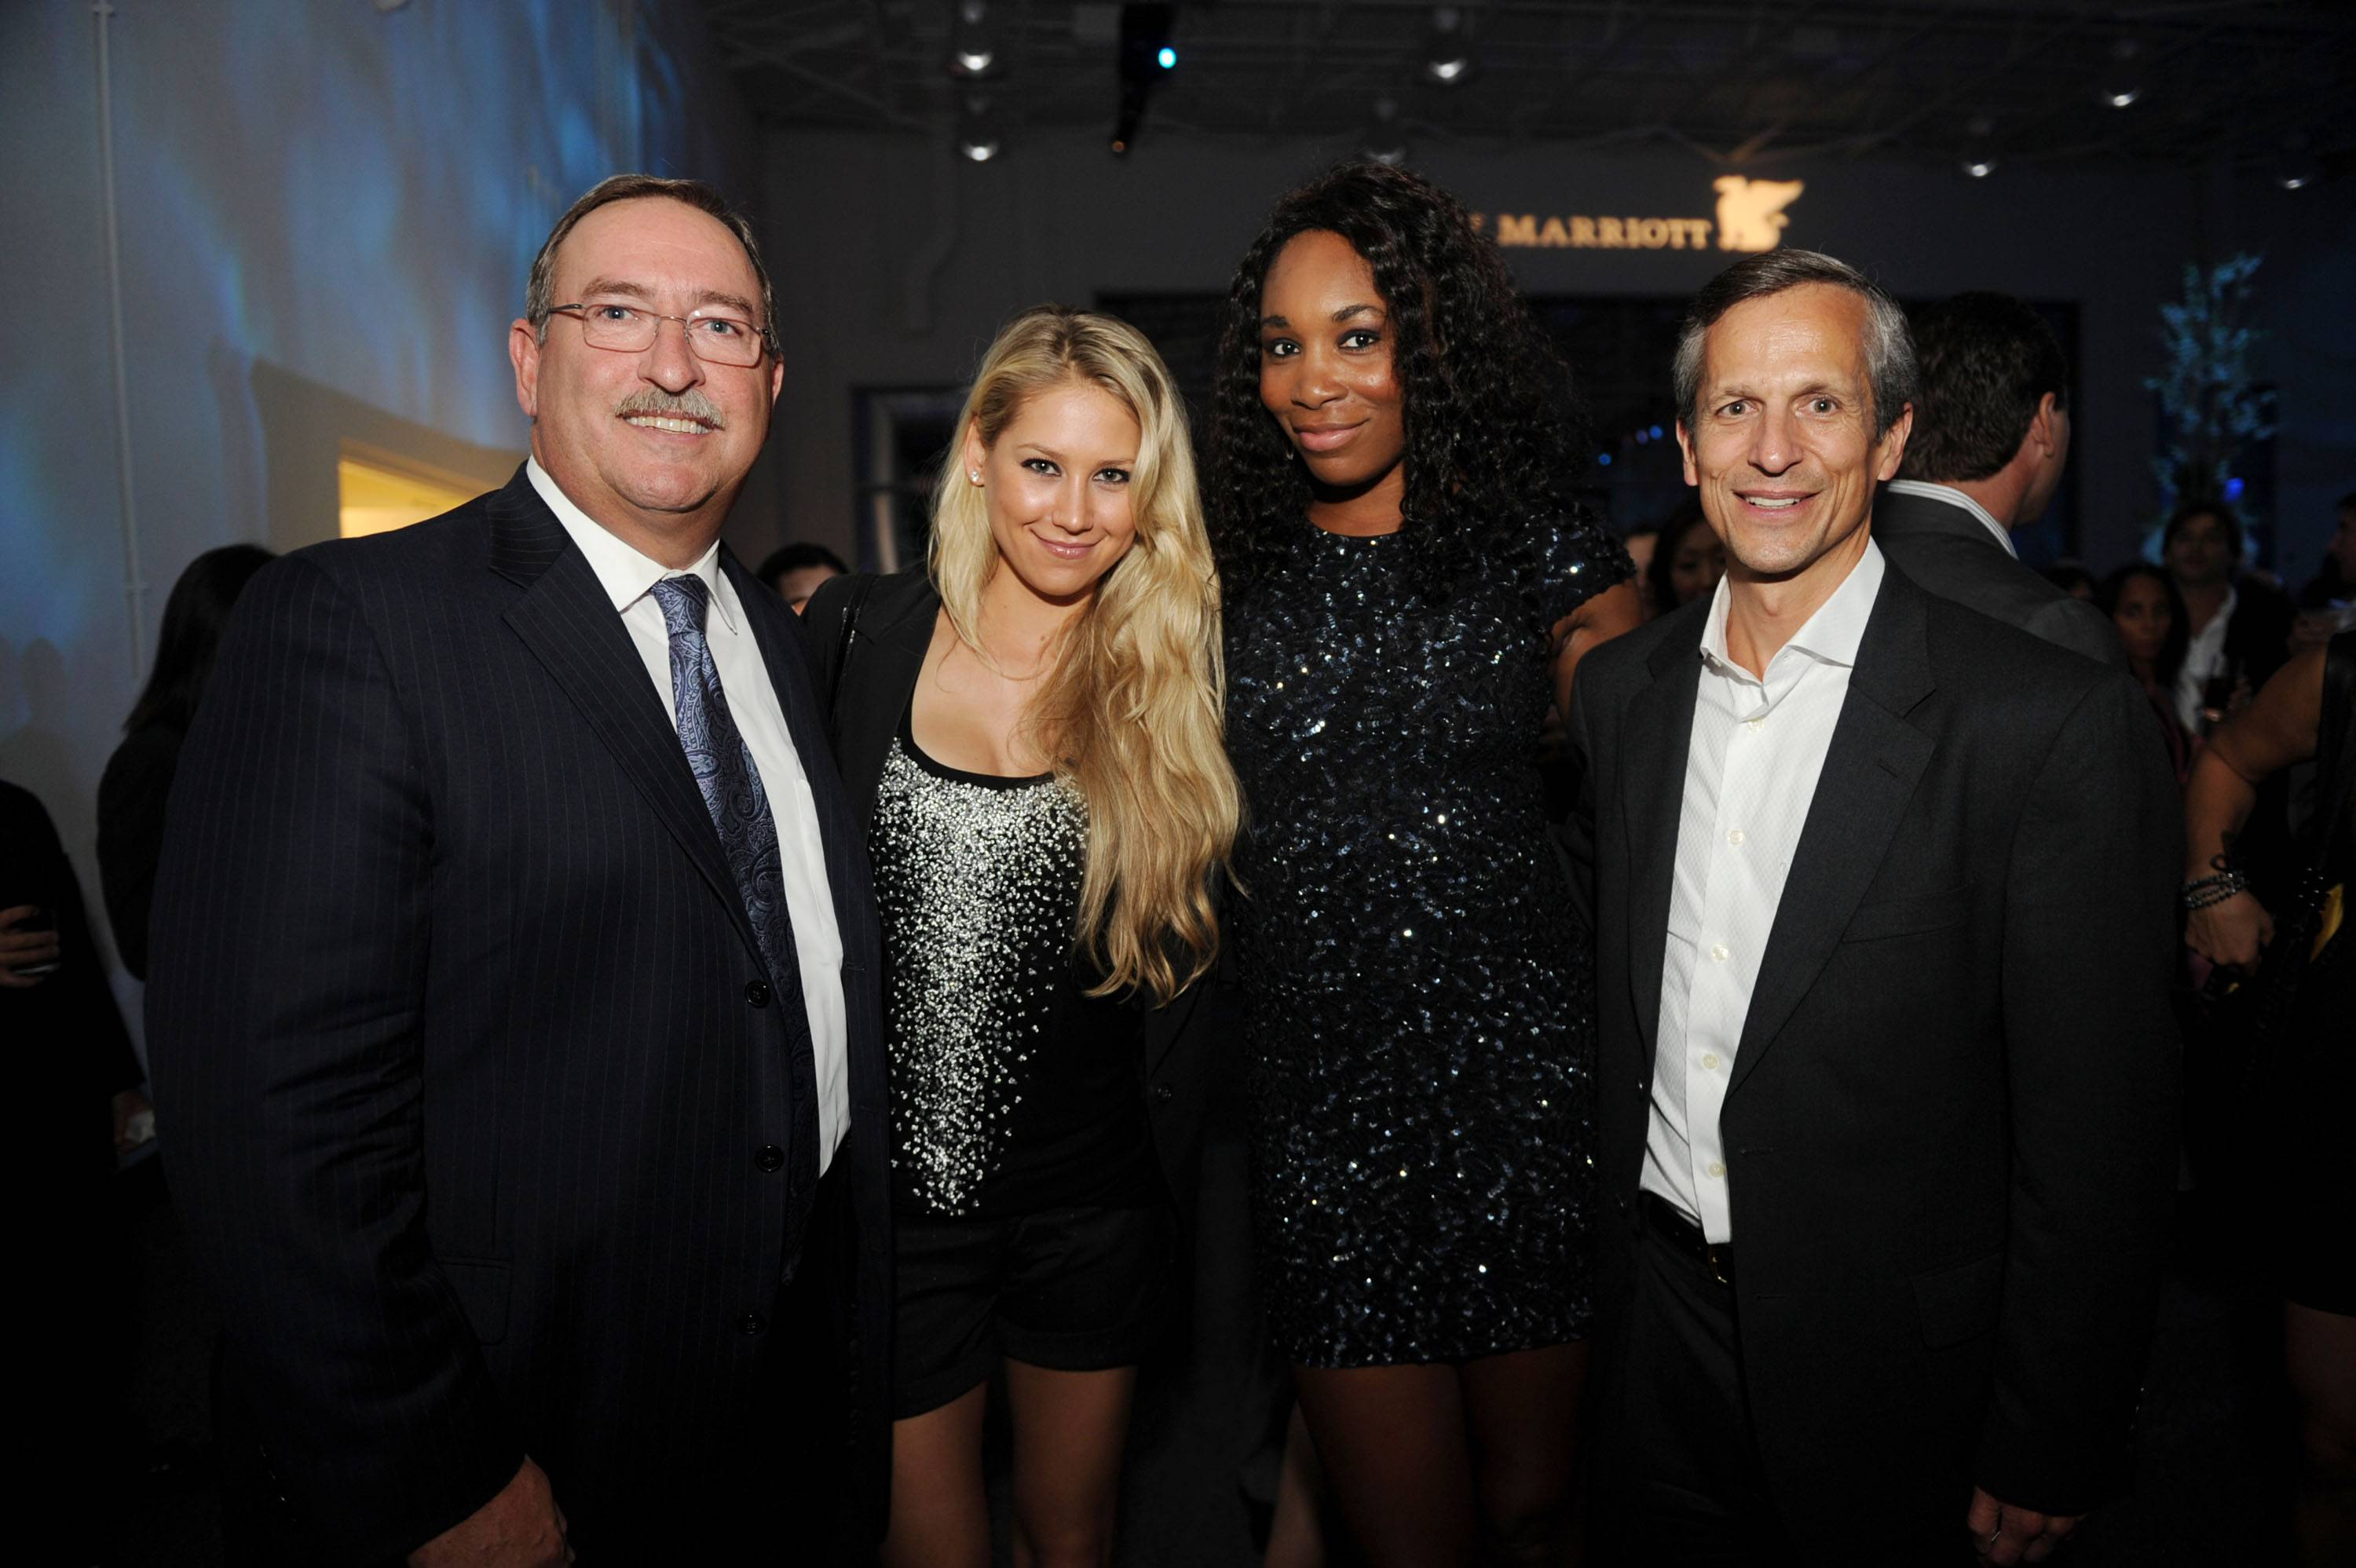 Marriott Executives with Anna Kournikova and Venus Williams